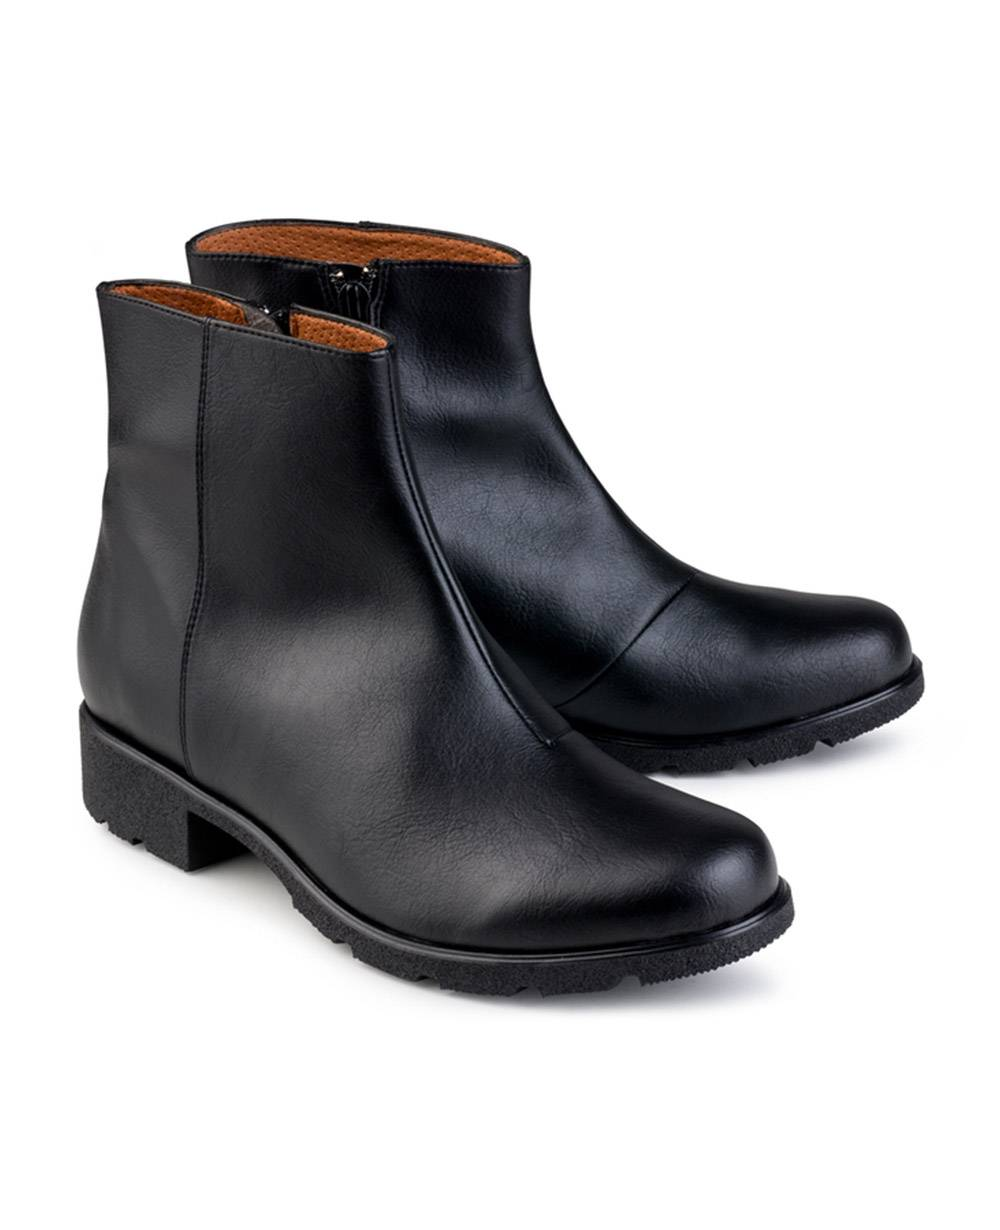 eco vegan shoes ethical boots